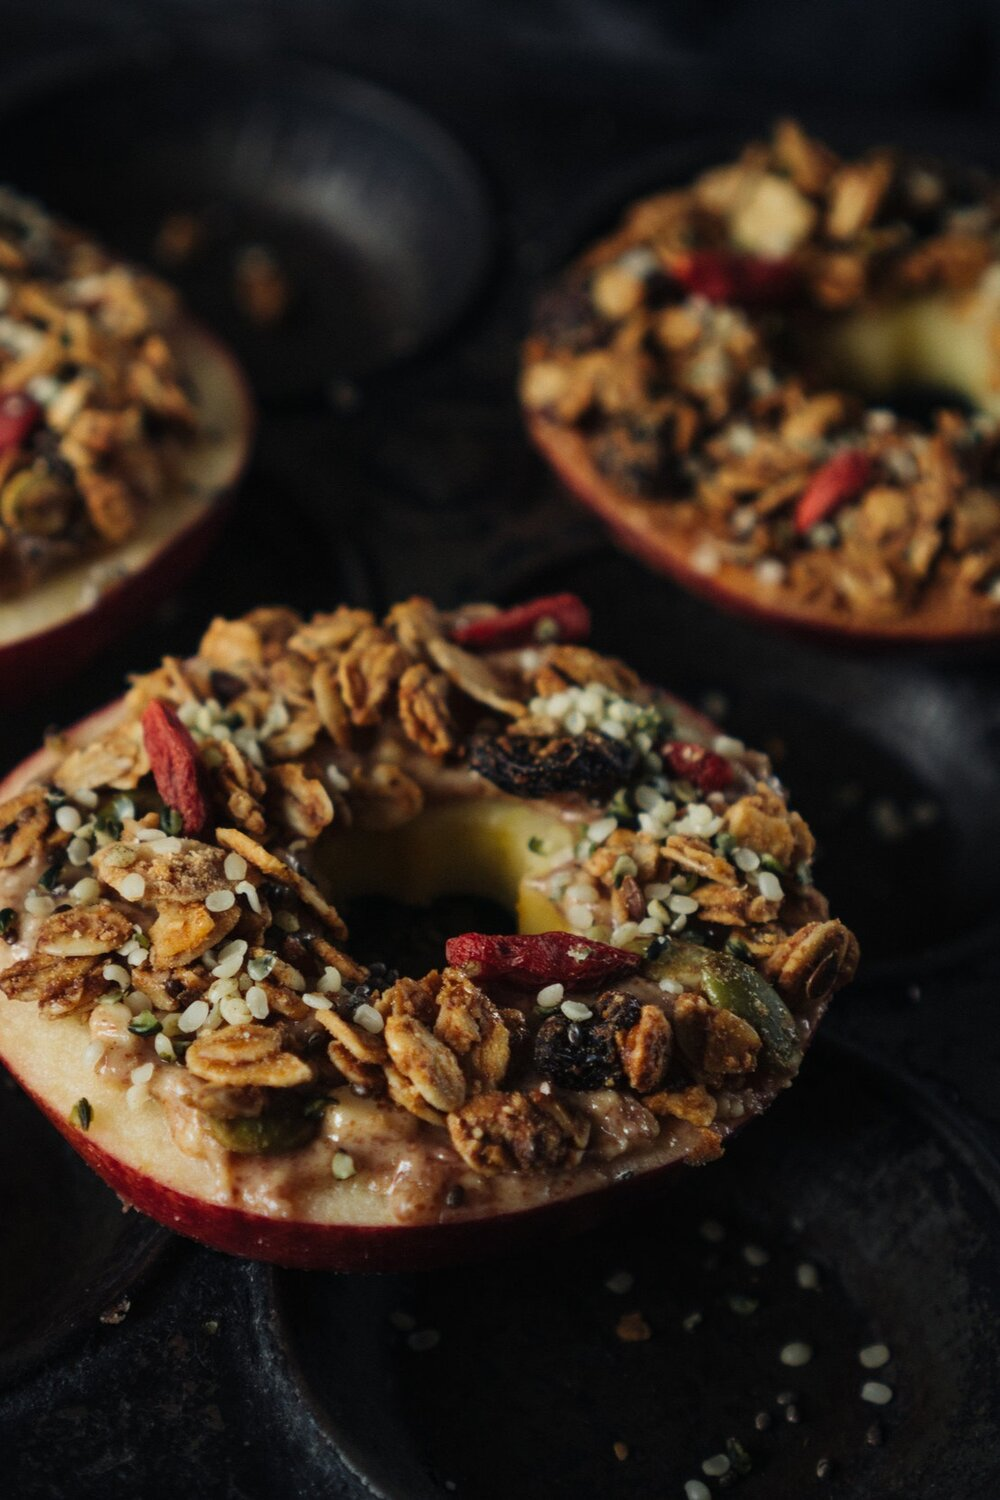 Apples_nut_butter_and_granola-1.jpg